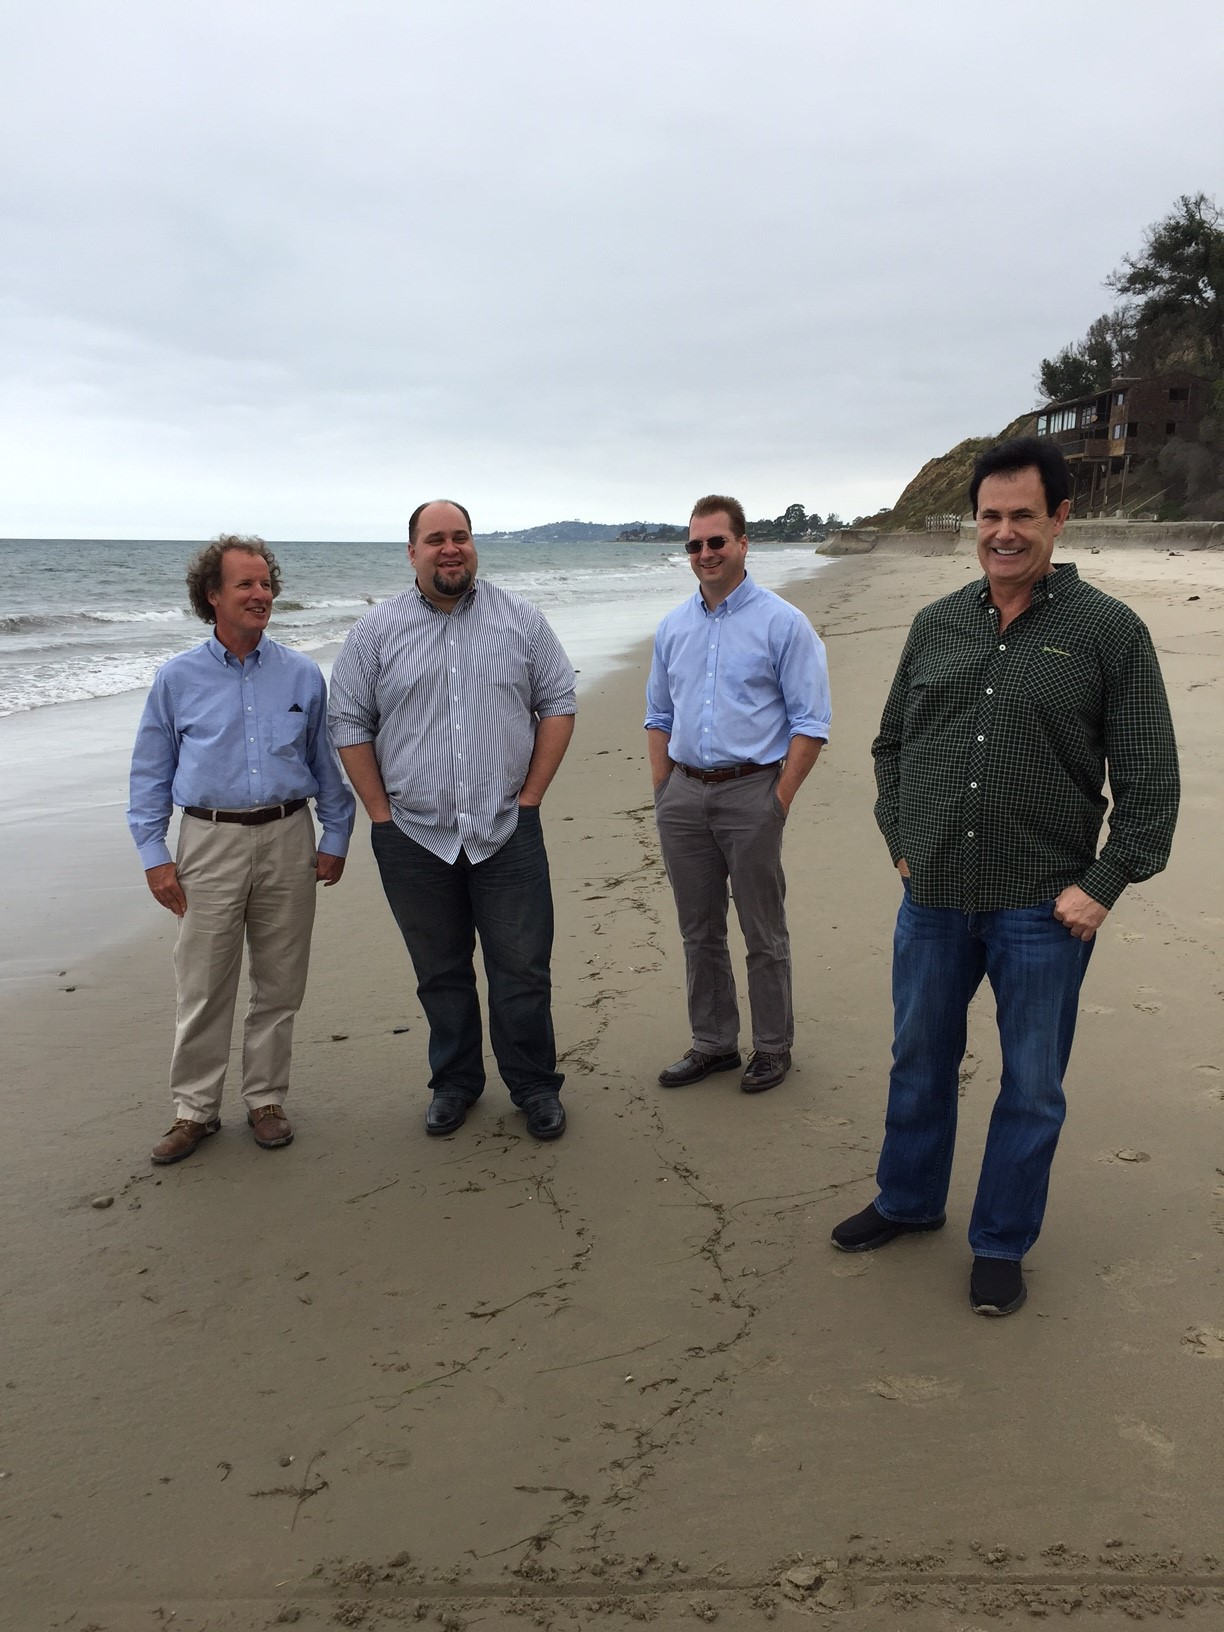 SLC officials discuss plans for Becker Well construction on Summerland Beach. Photo by Hillary Hauser.